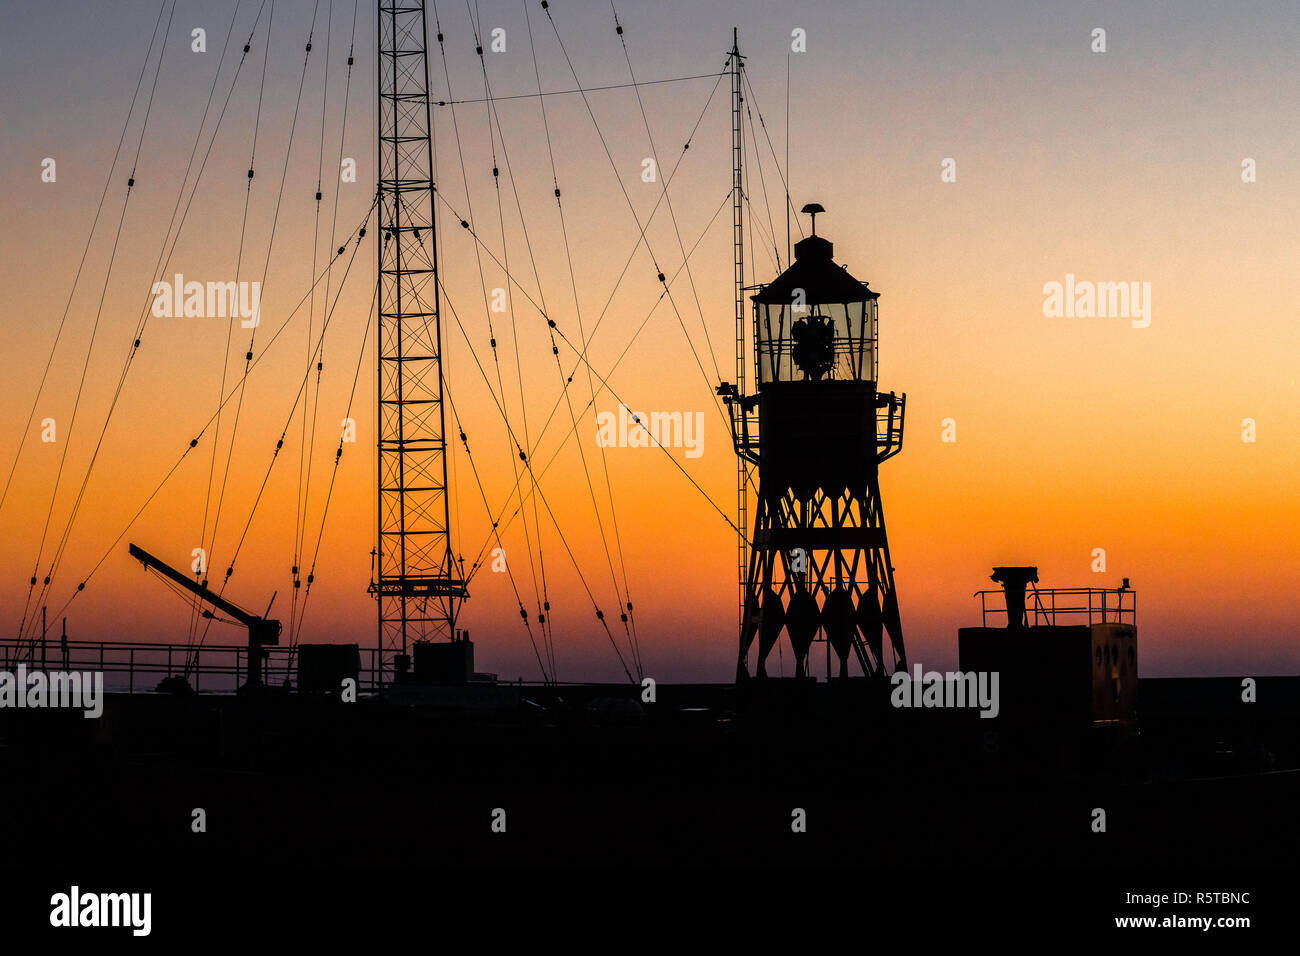 Abstract photo with industrial character of a lighthouse against a brightly colored sky with beautiful intense colors of the sunset. Minimalitic image - Stock Image